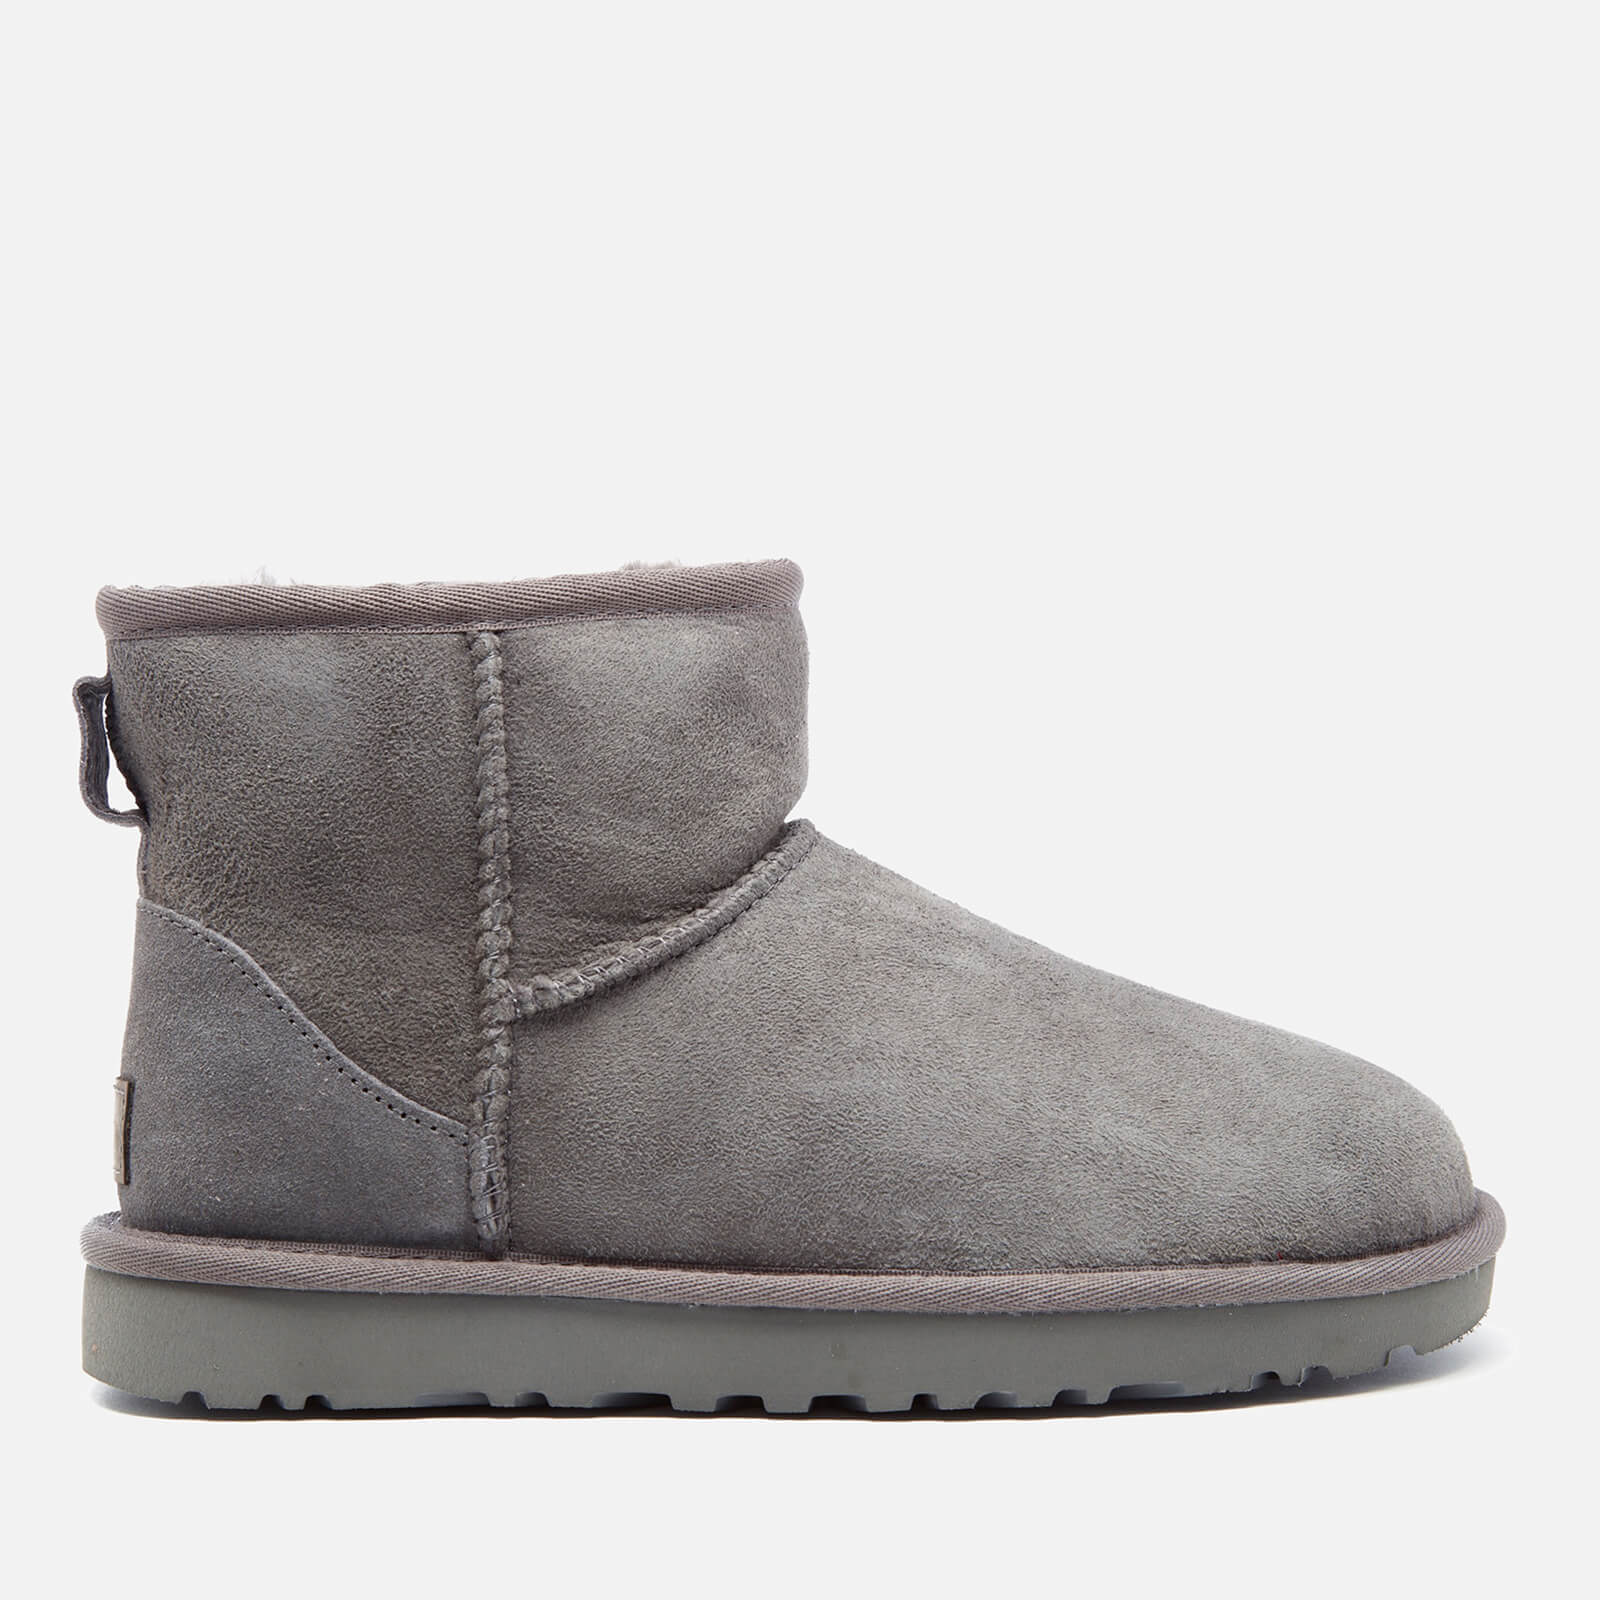 485b87977ac UGG Women's Classic Mini II Sheepskin Boots - Grey